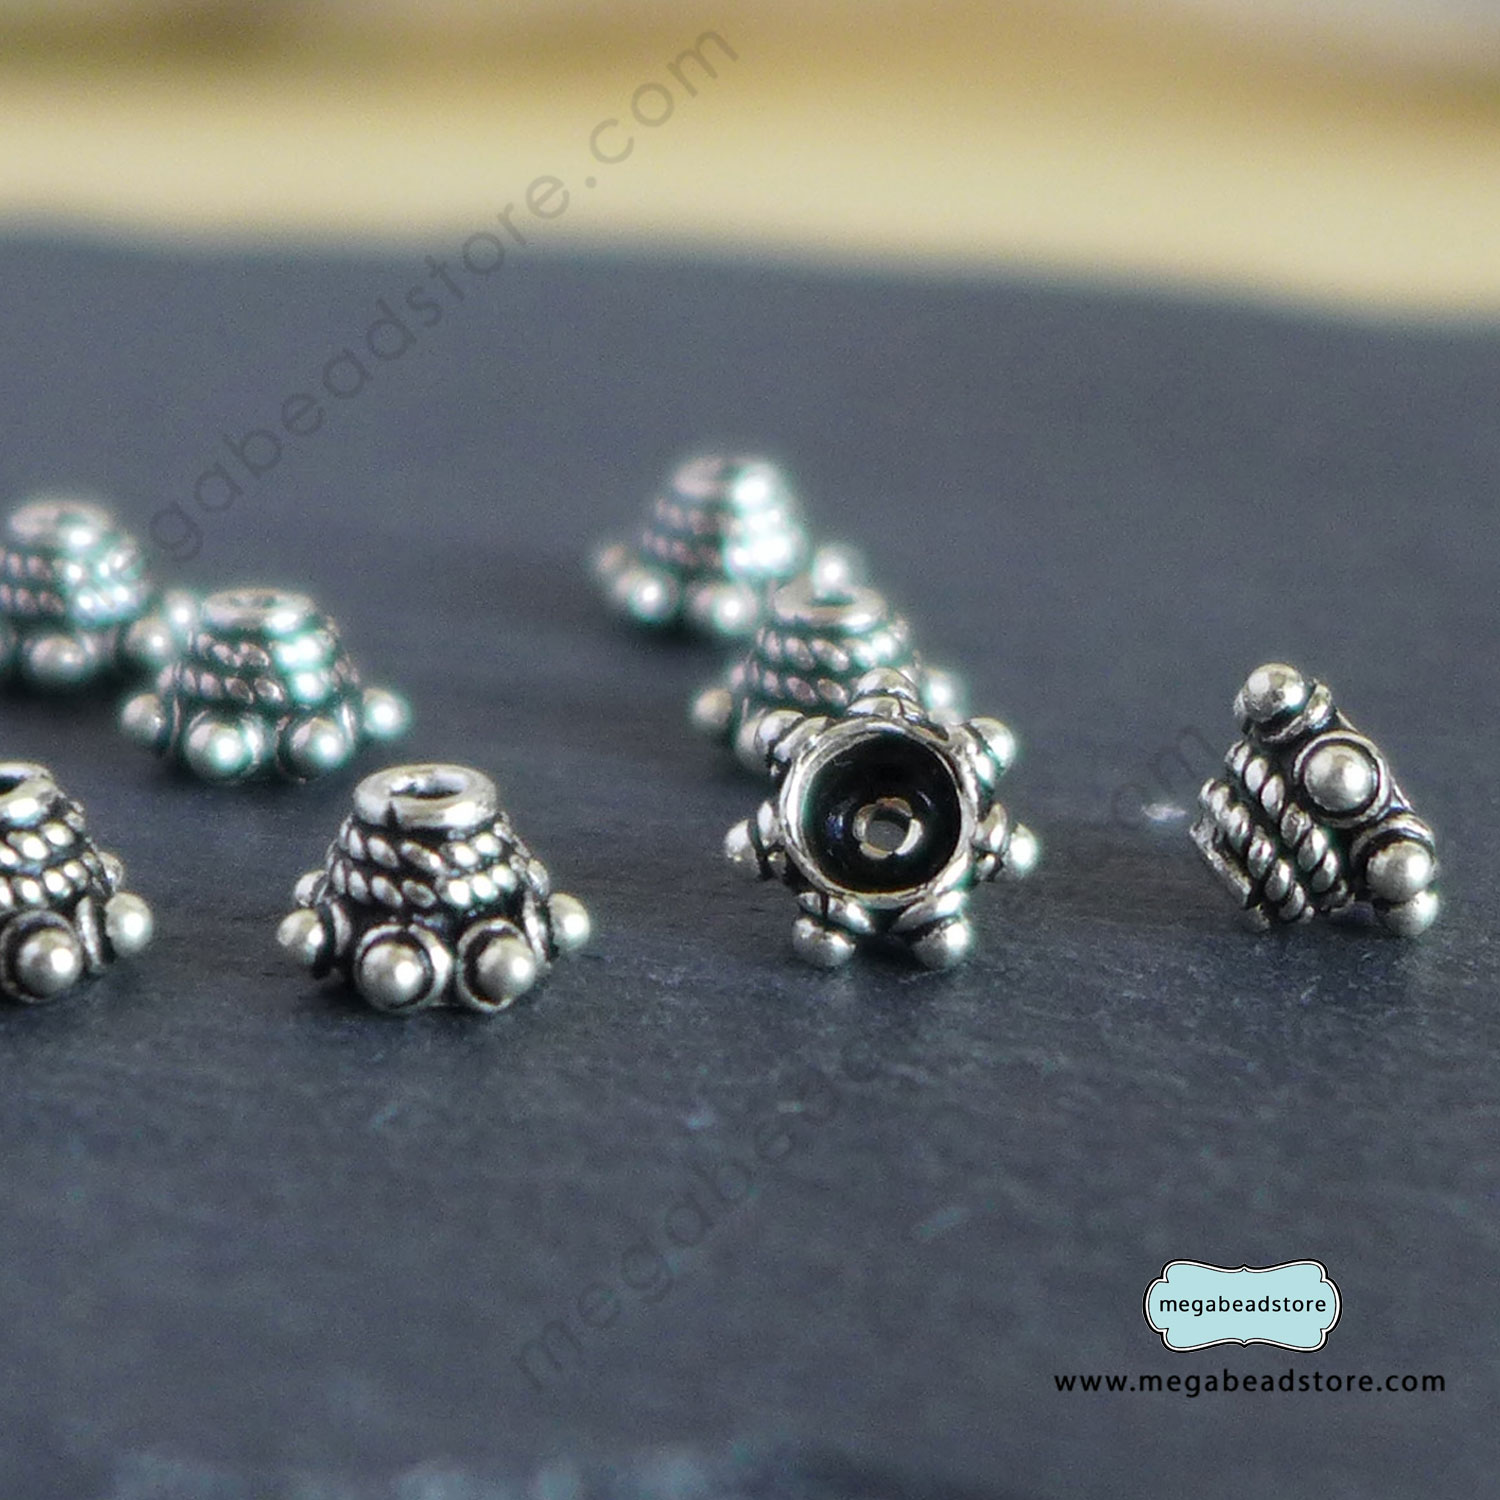 C84 Bead Caps   6mm x 4mm   12 pcs